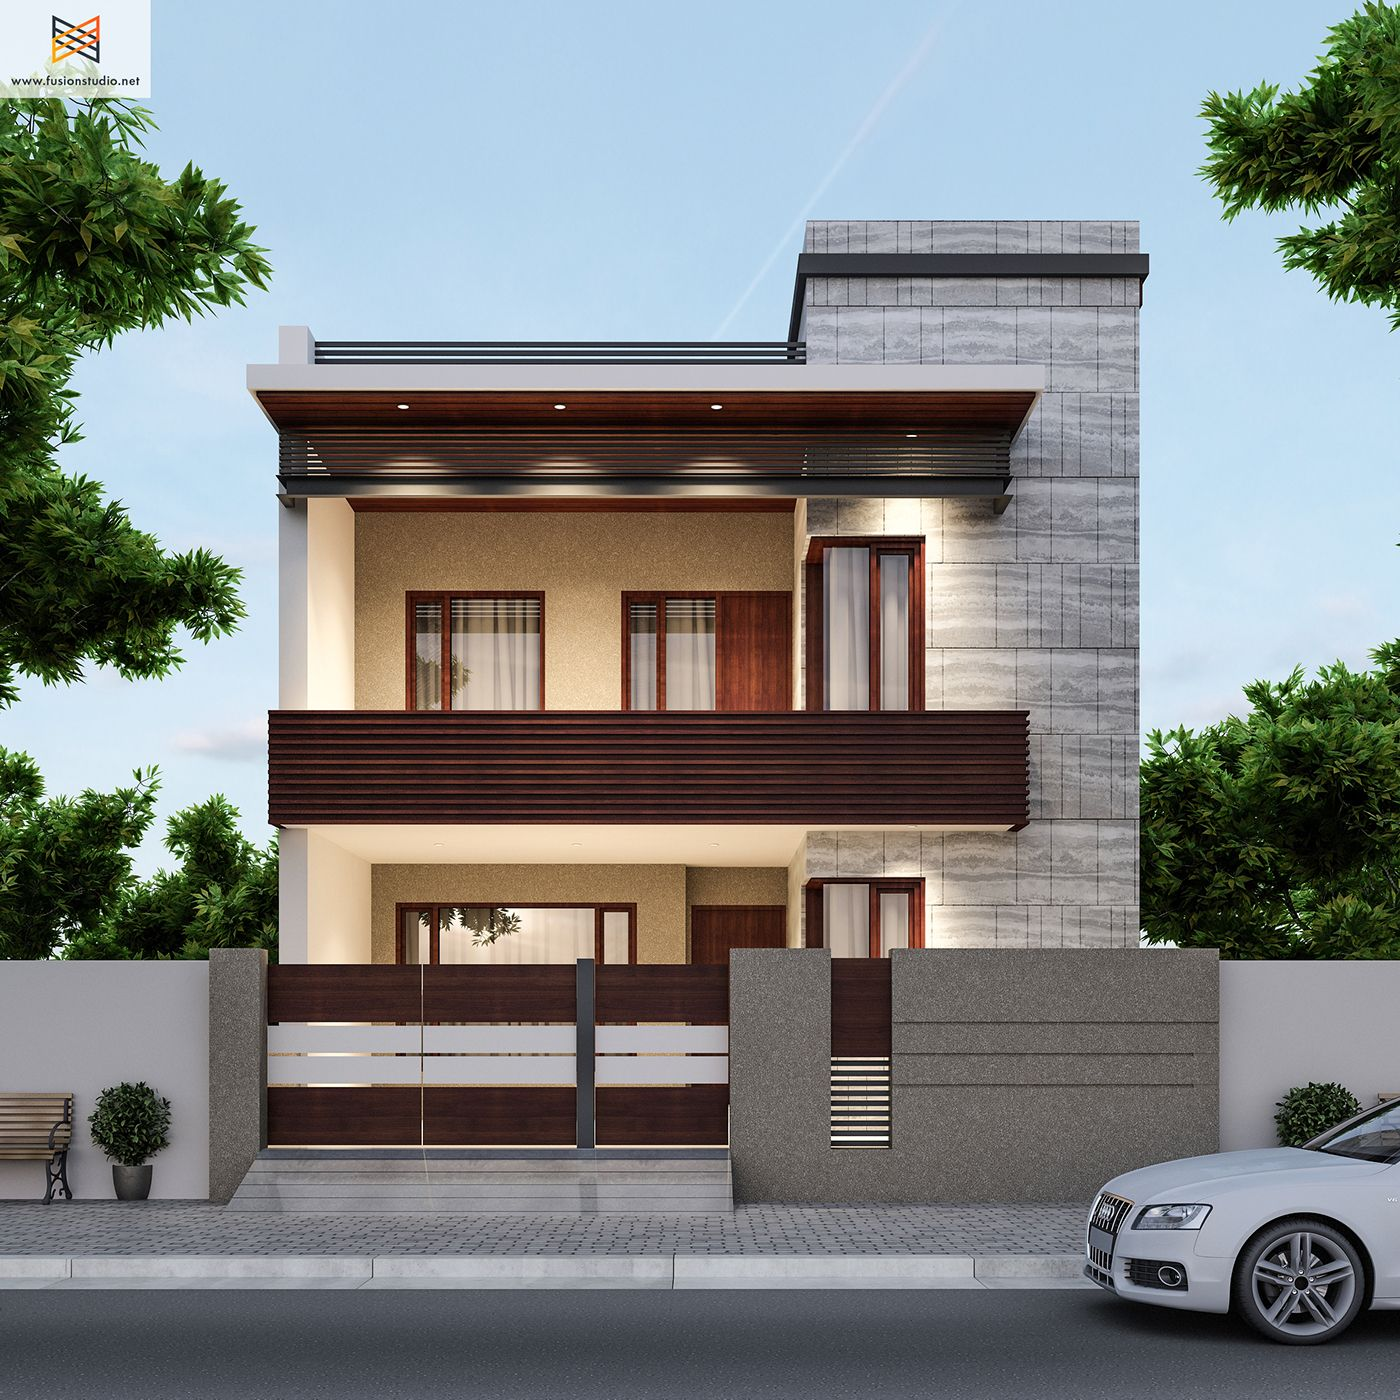 b1d026280a204b6518111249f852d225 - 43+ Small House House Front Design Indian Style Simple Background